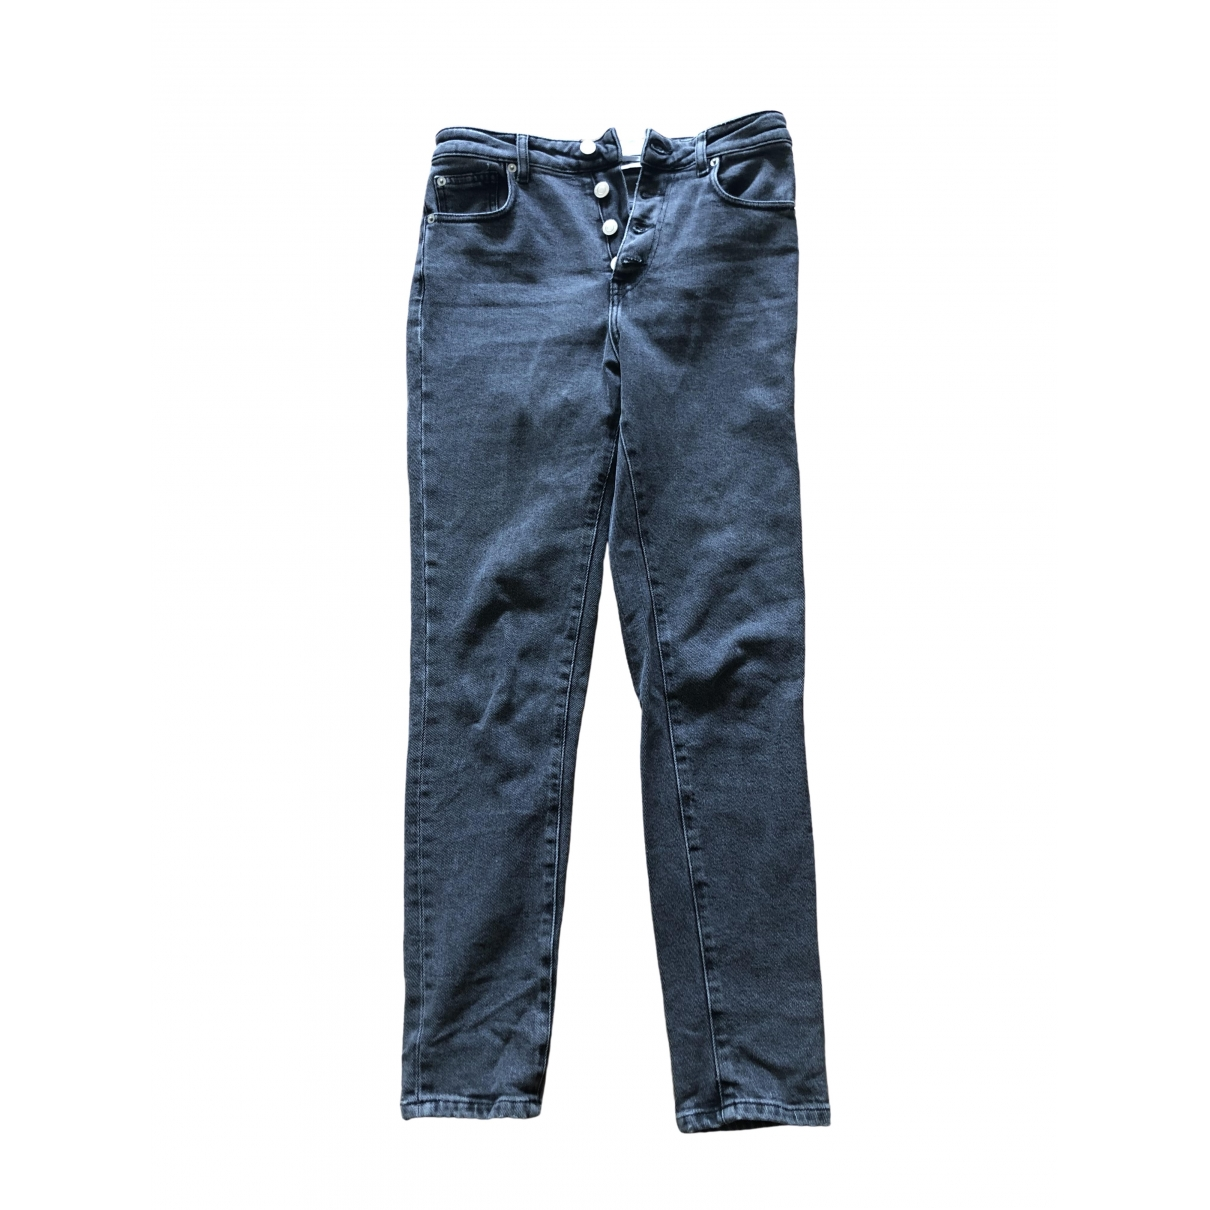 Iro \N Anthracite Denim - Jeans Jeans for Women 26 US